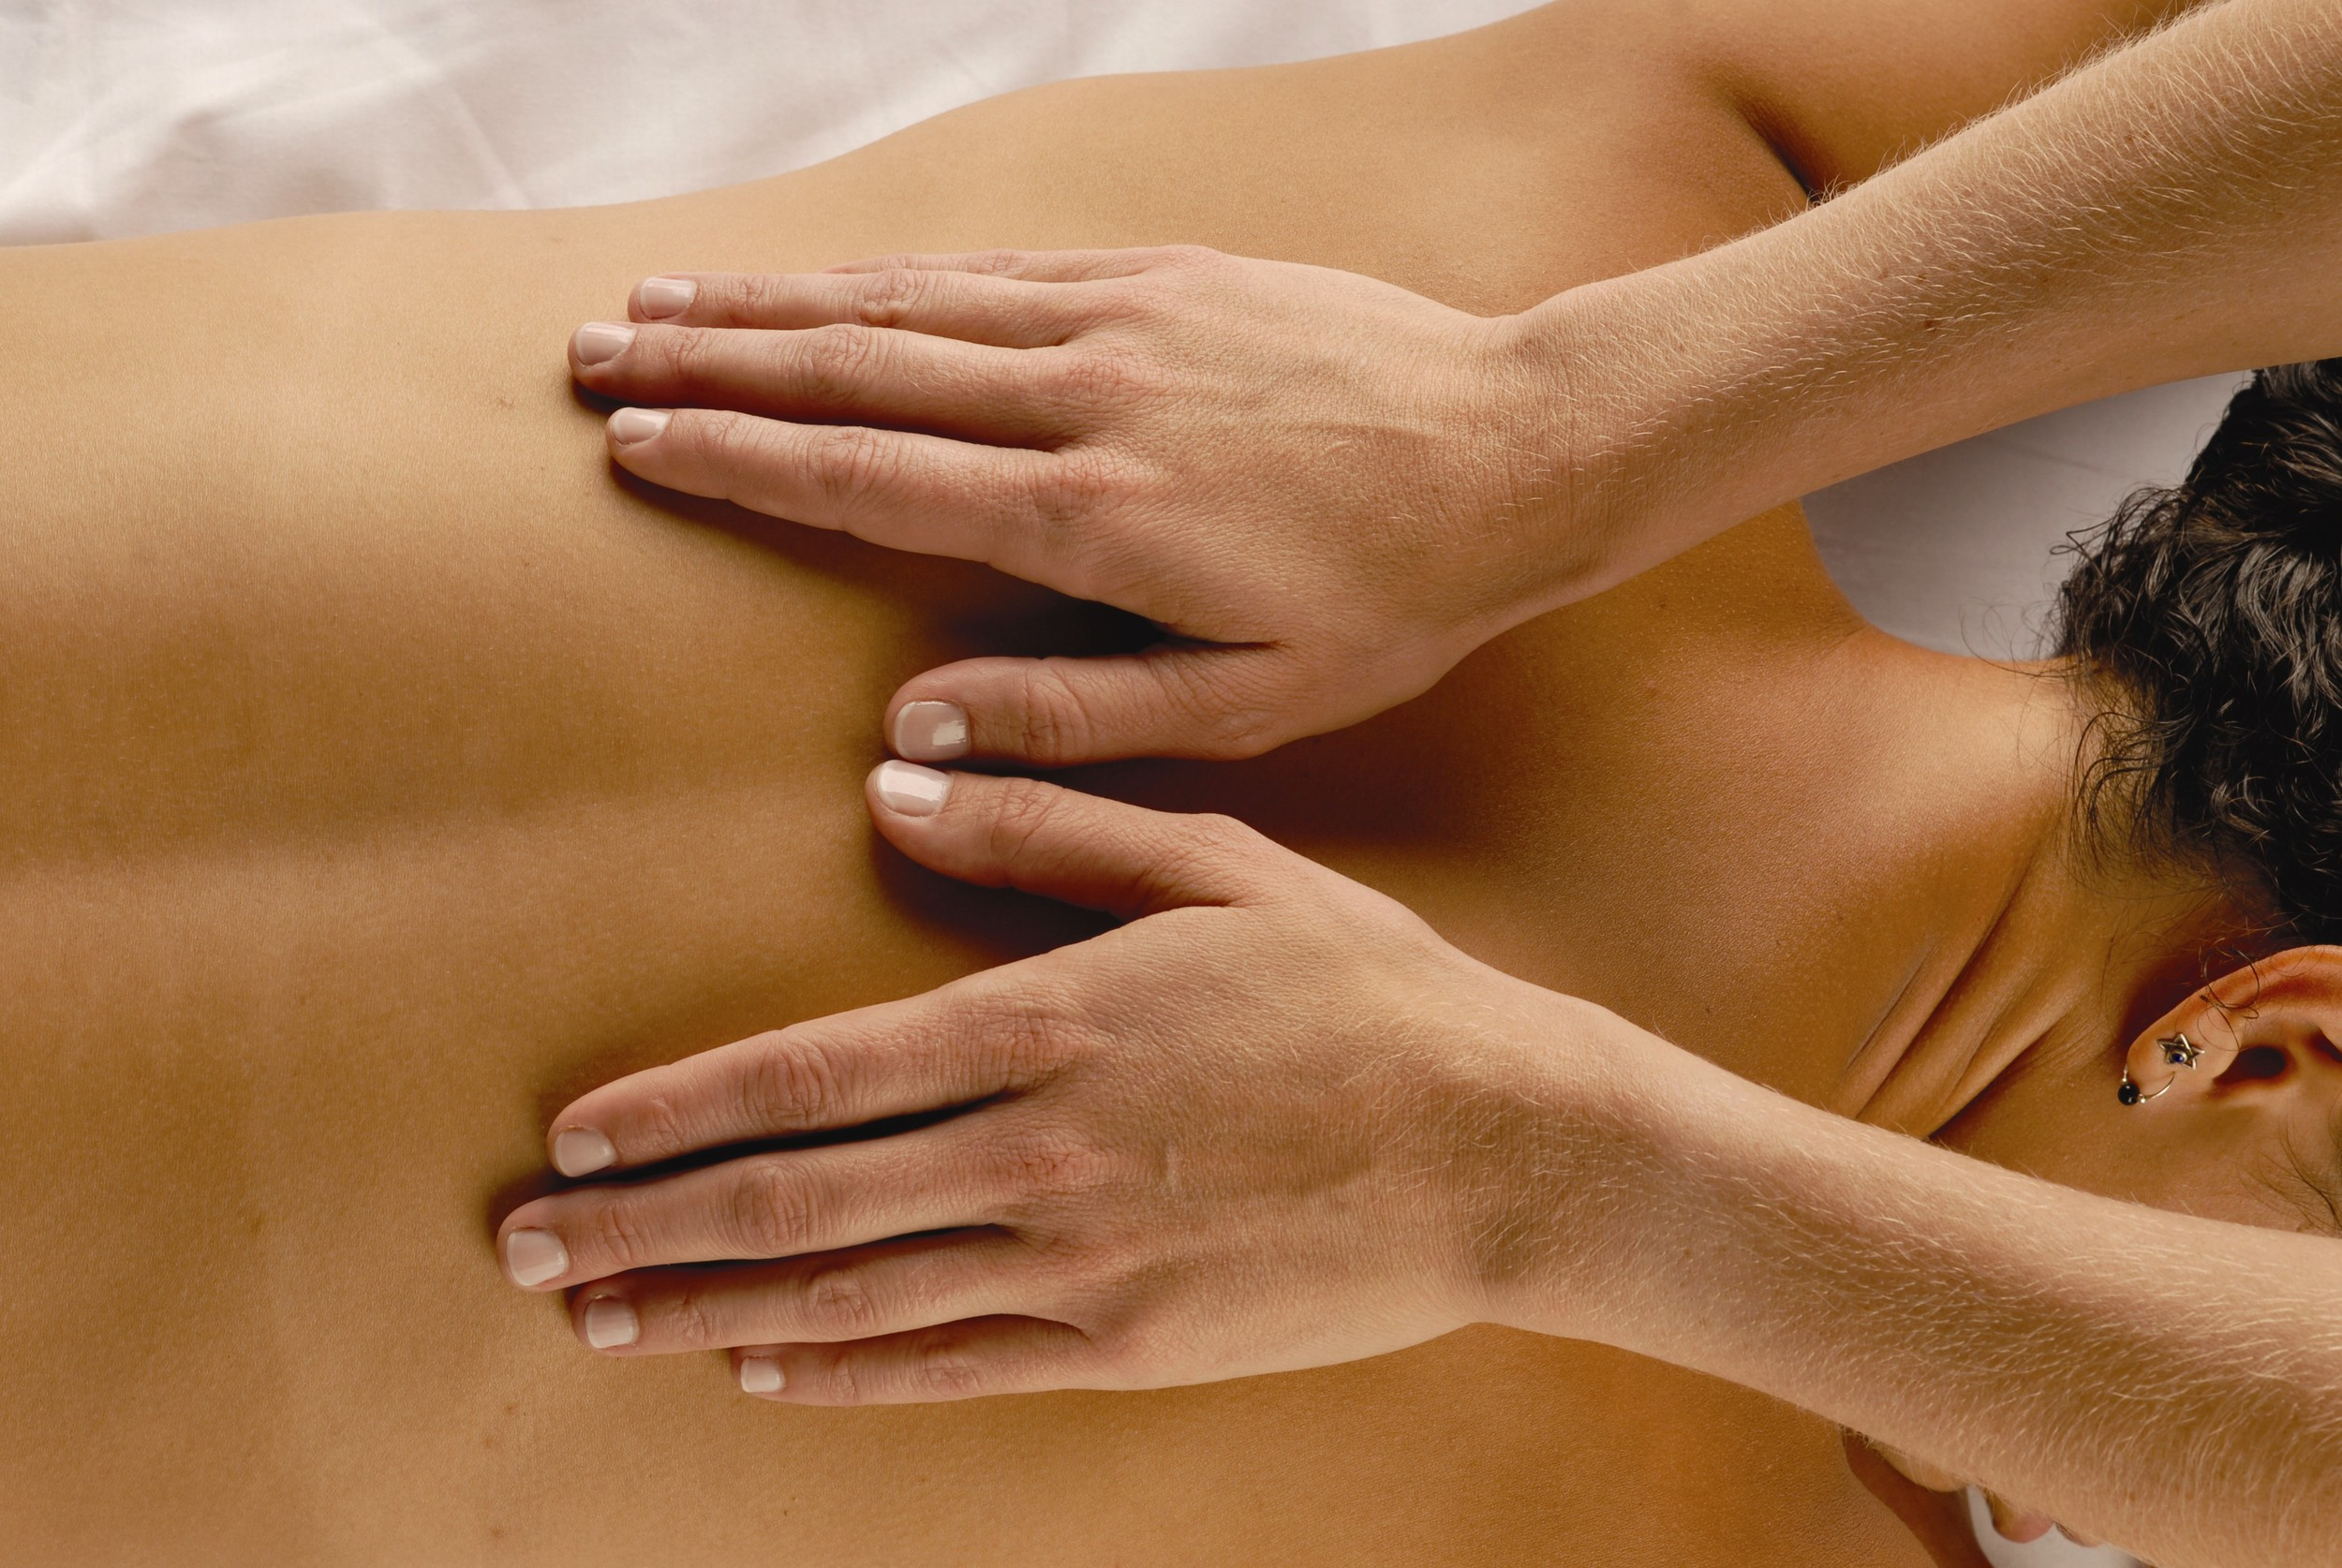 MEDICAL MASSAGE:   Alleviate pain, discomfort, and tension while enhancing posture, athletic performance, and relaxation with targeted manipulations of the soft tissues in the body. Photo courtesy of ABMP